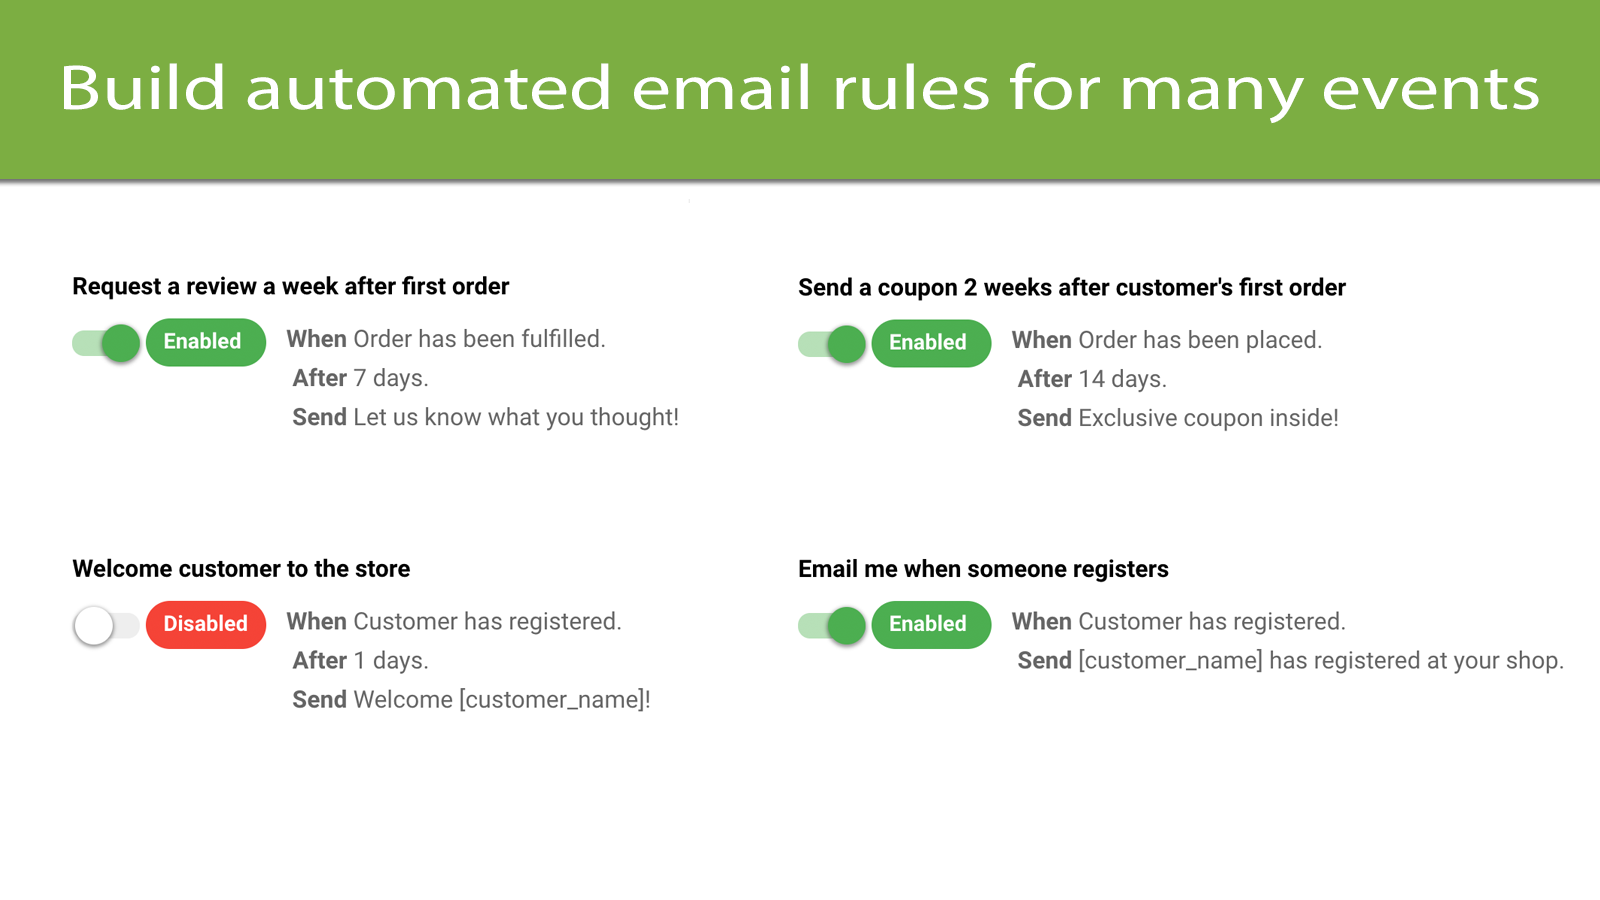 Build automated email rules for many events